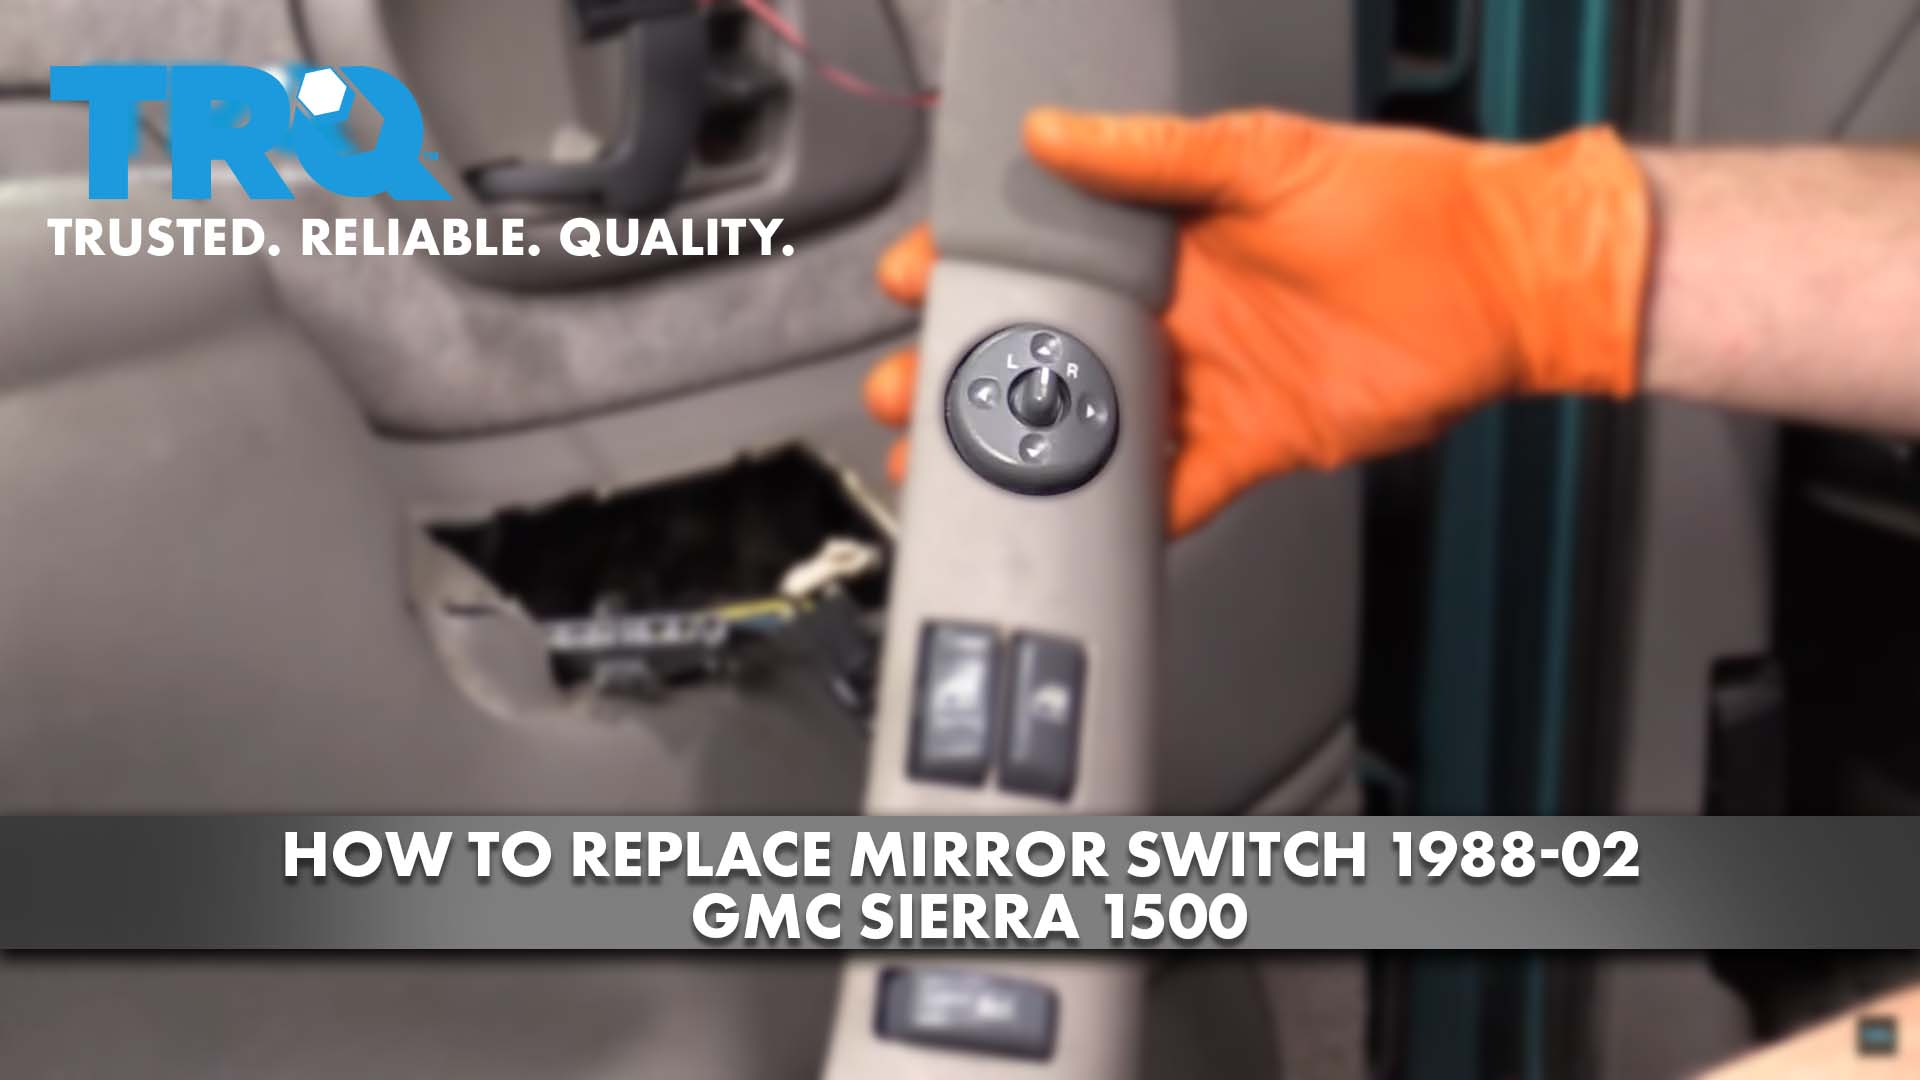 How to Replace Mirror Switch 1988-02 GMC Sierra 1500